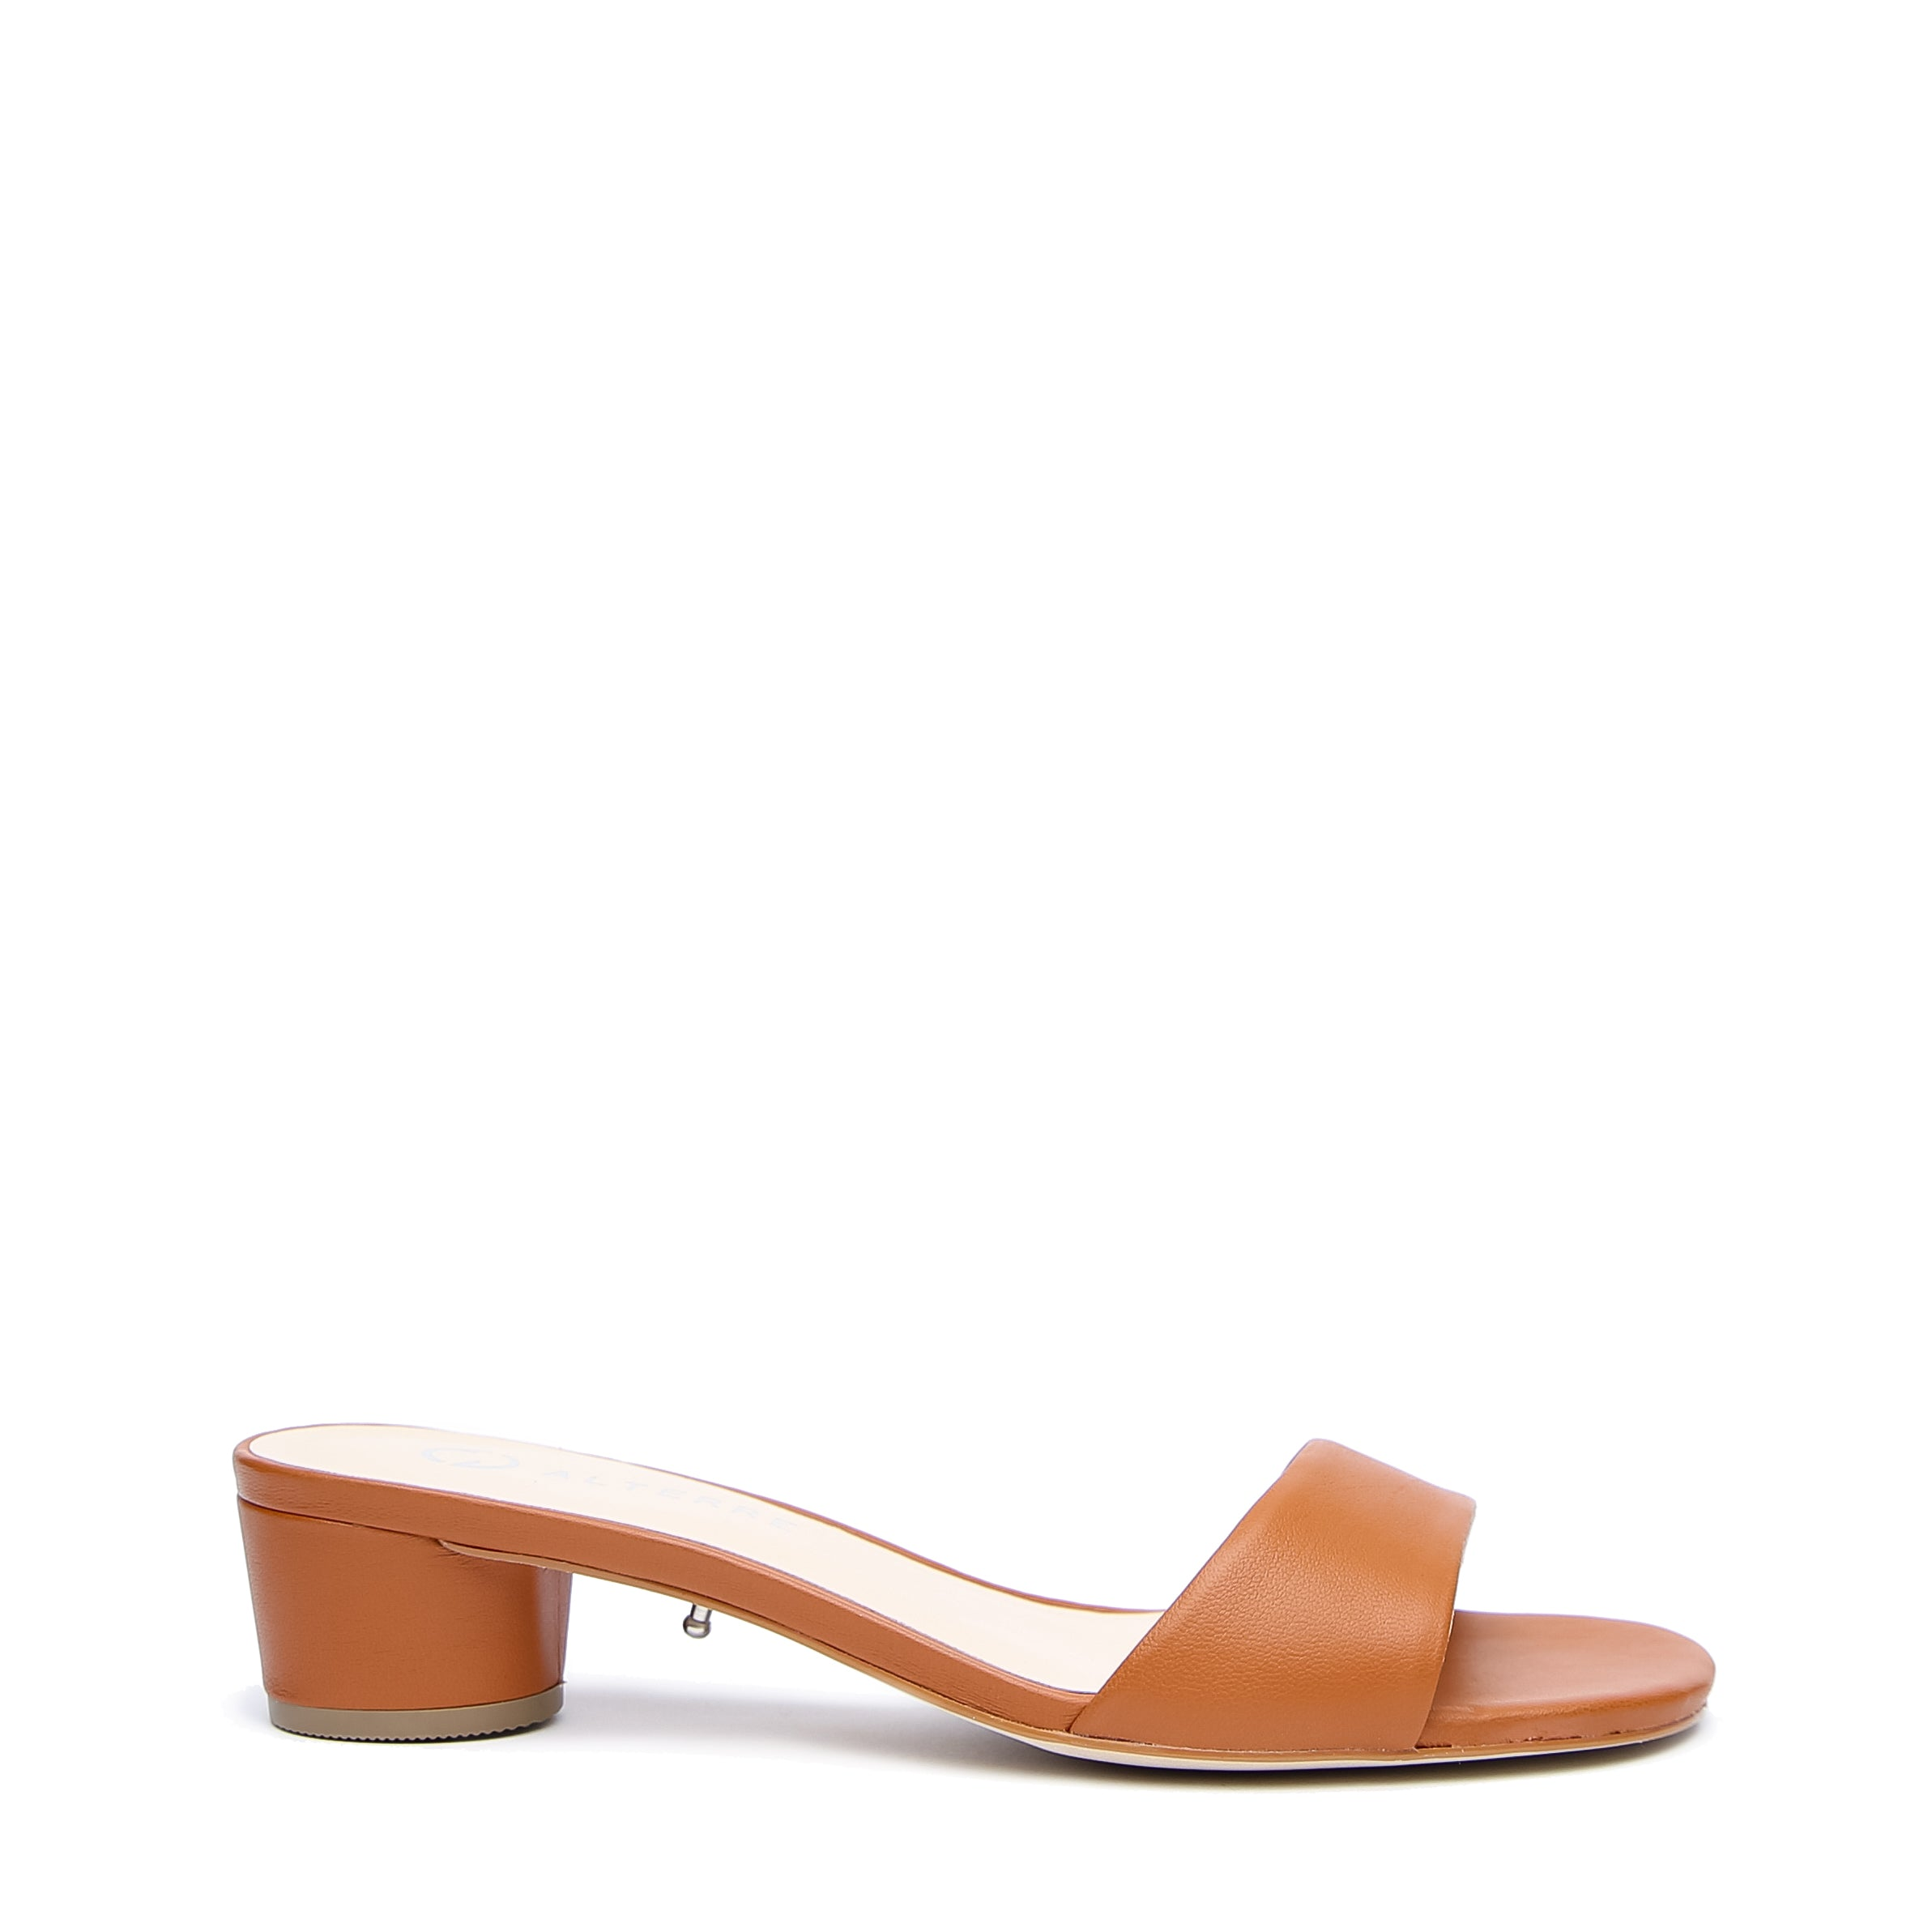 Brown Customized Sandals | Alterre Interchangeable Sandals - Sustainable Shoes & Ethical Footwear